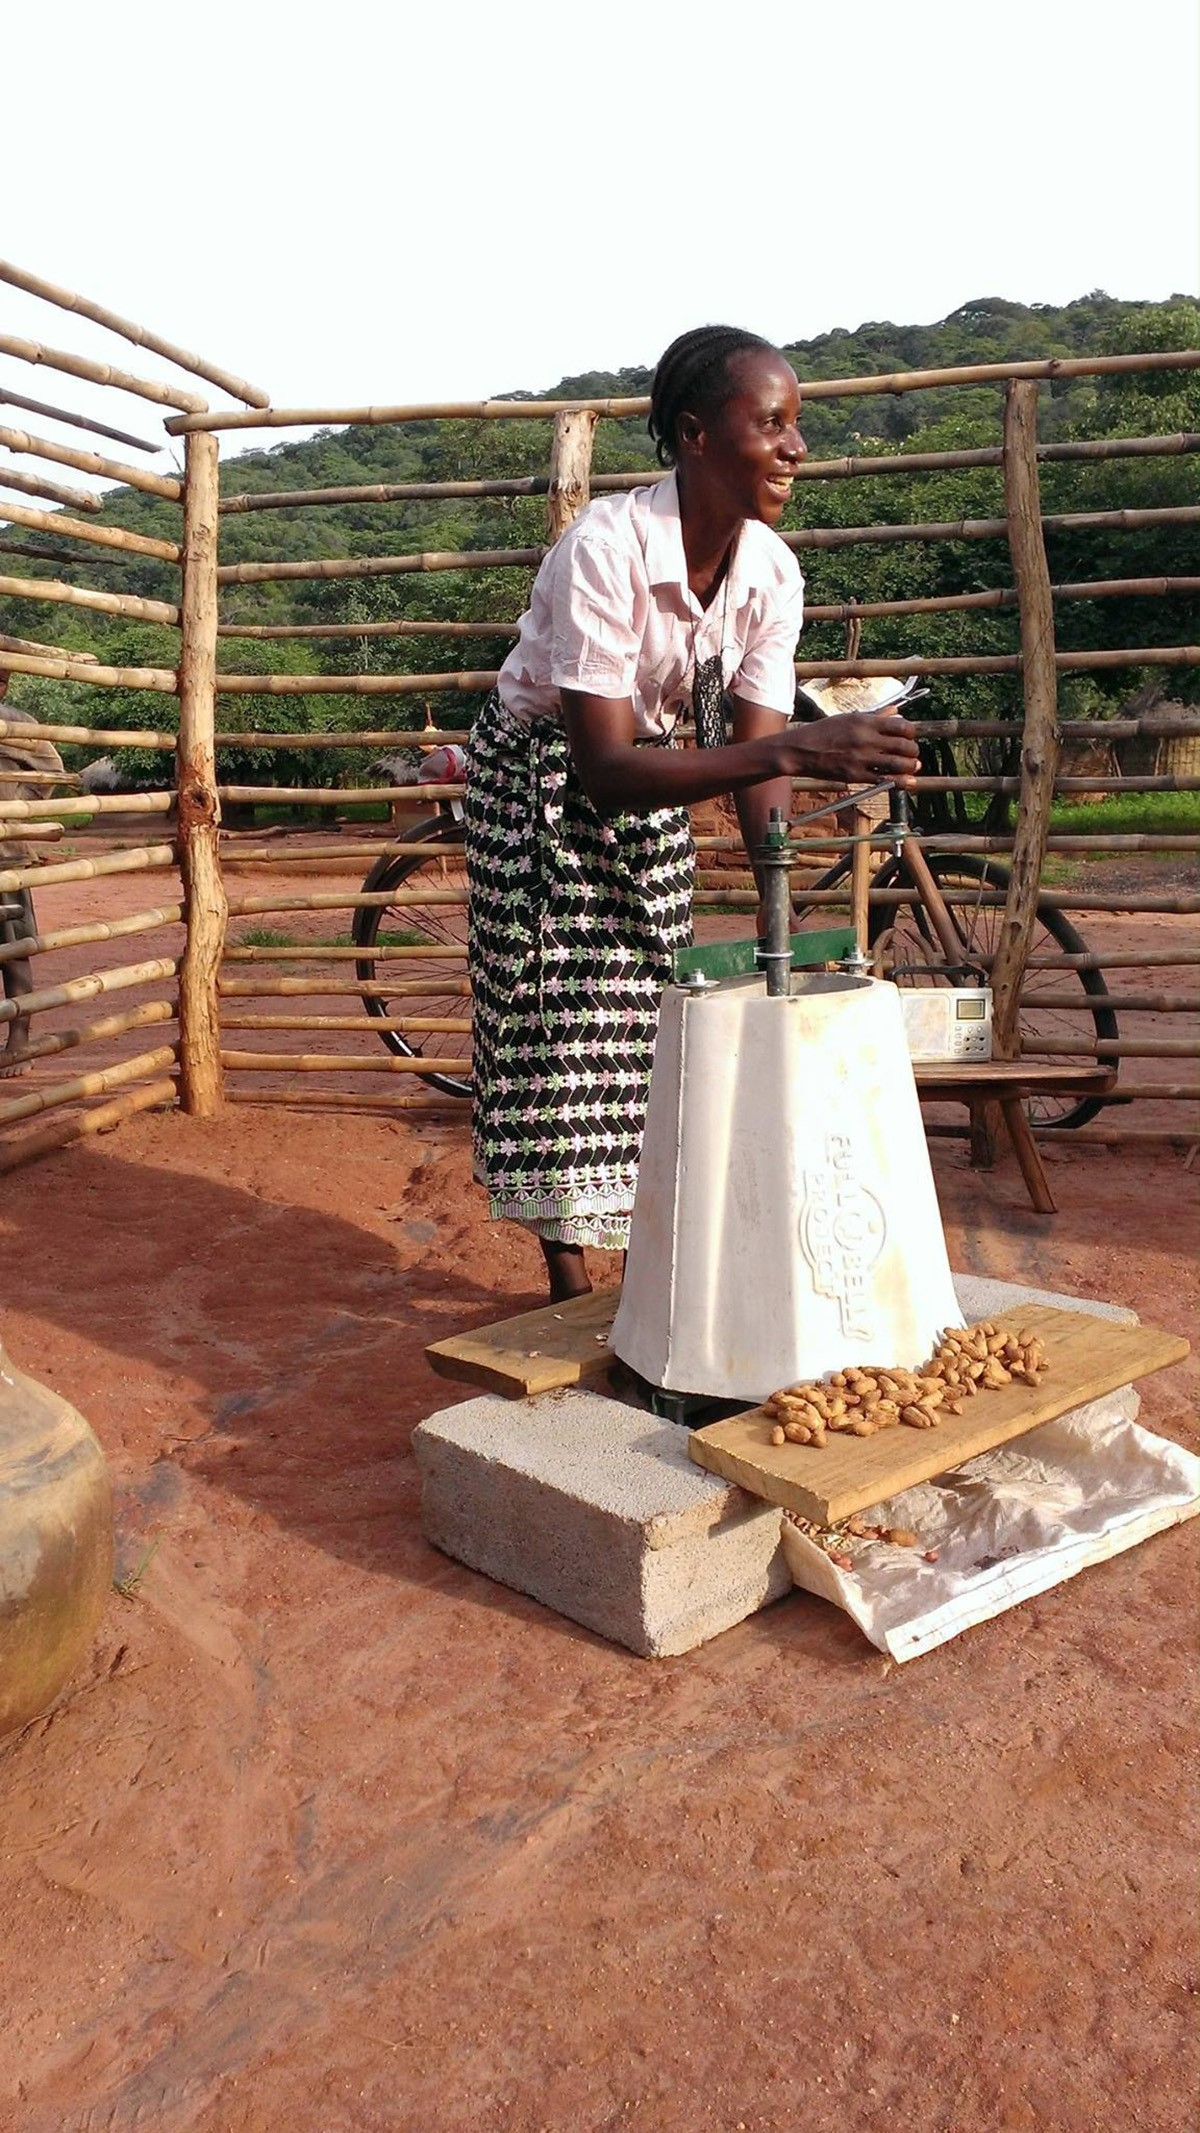 peanut-sheller-woman-using-zambia